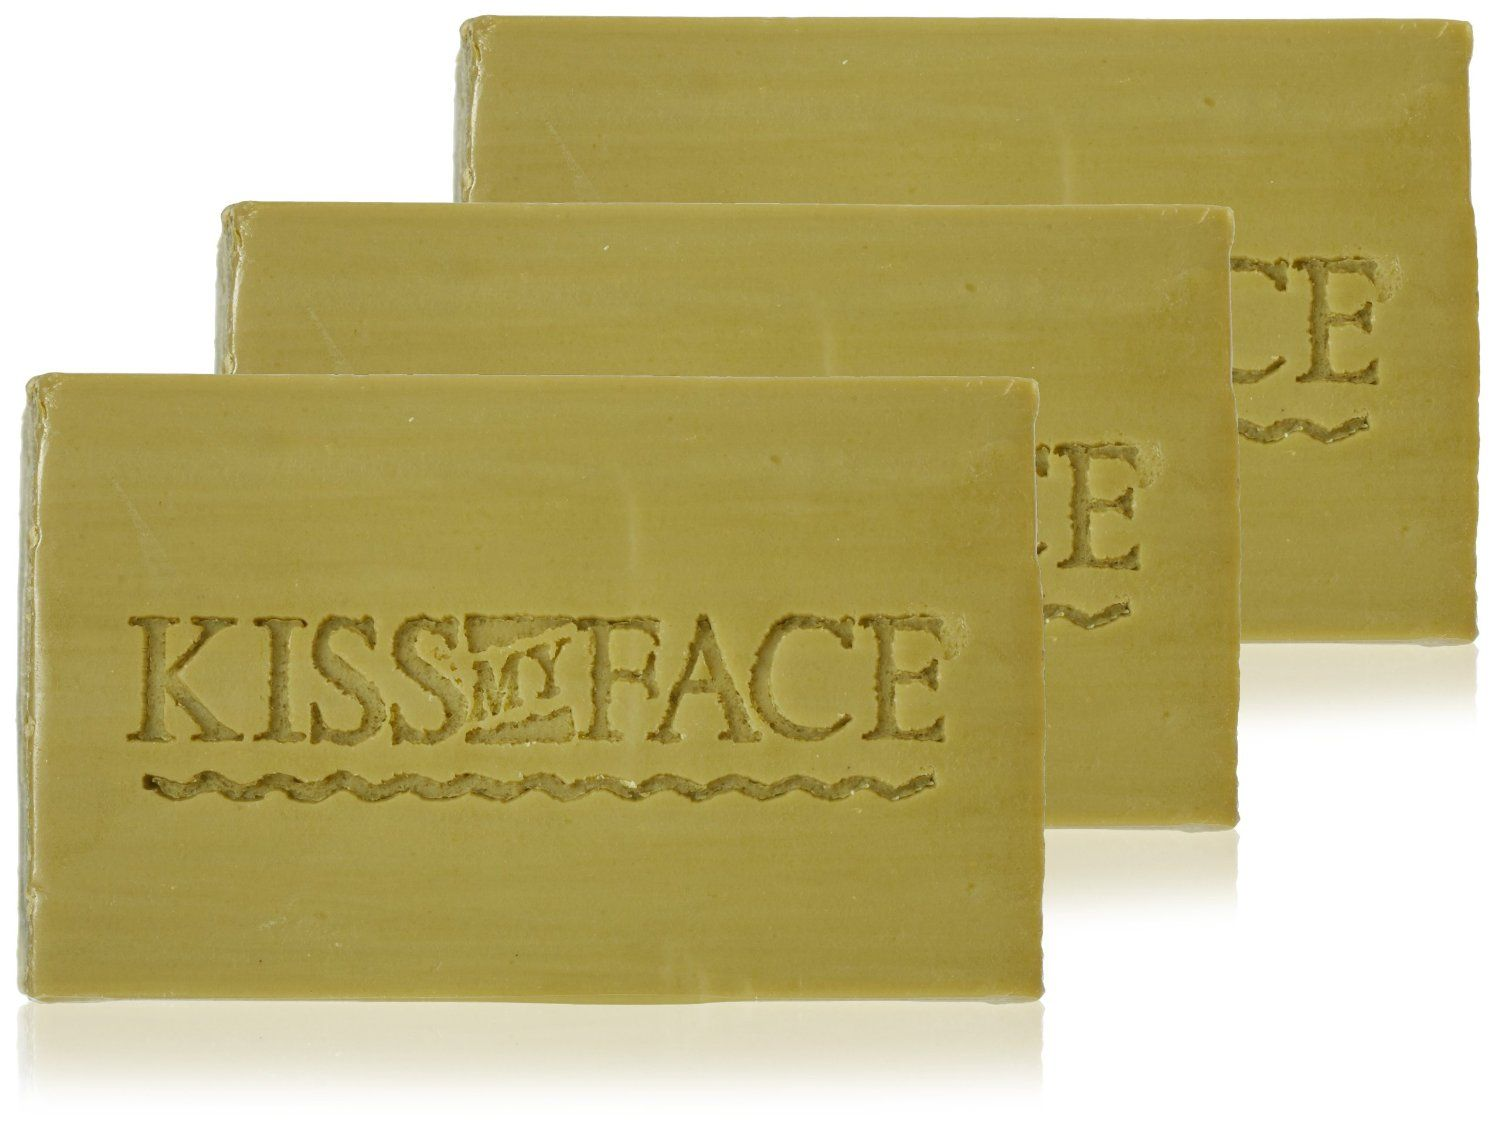 Amazon.com : Greek Soap 250g - Olive Oil Soap from Greece